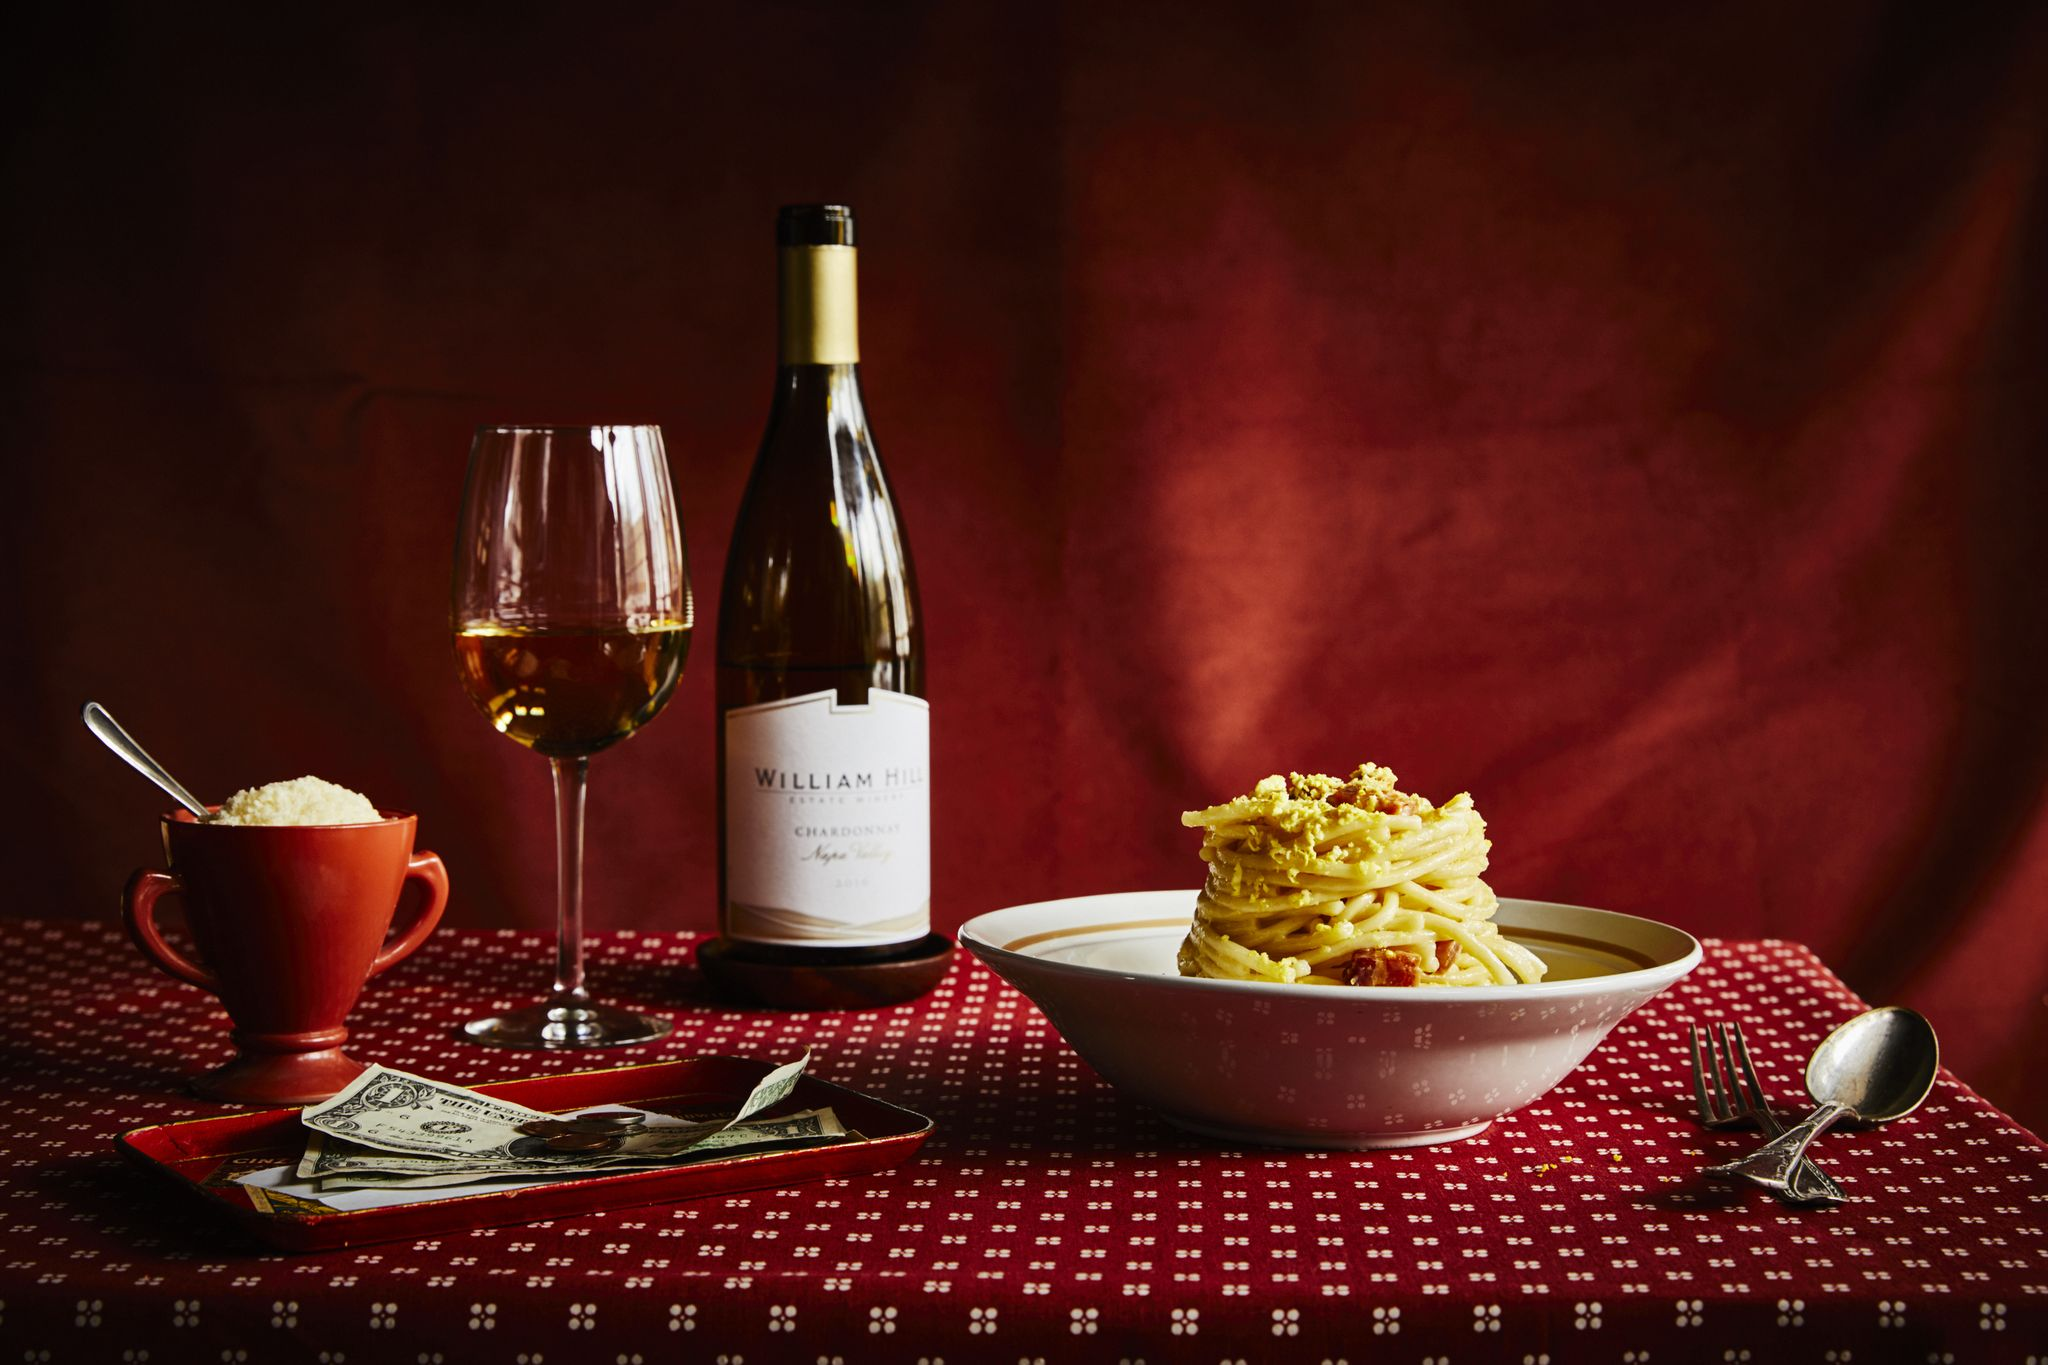 Here Are The Classic Foods to Pair With Your Favorite Wines